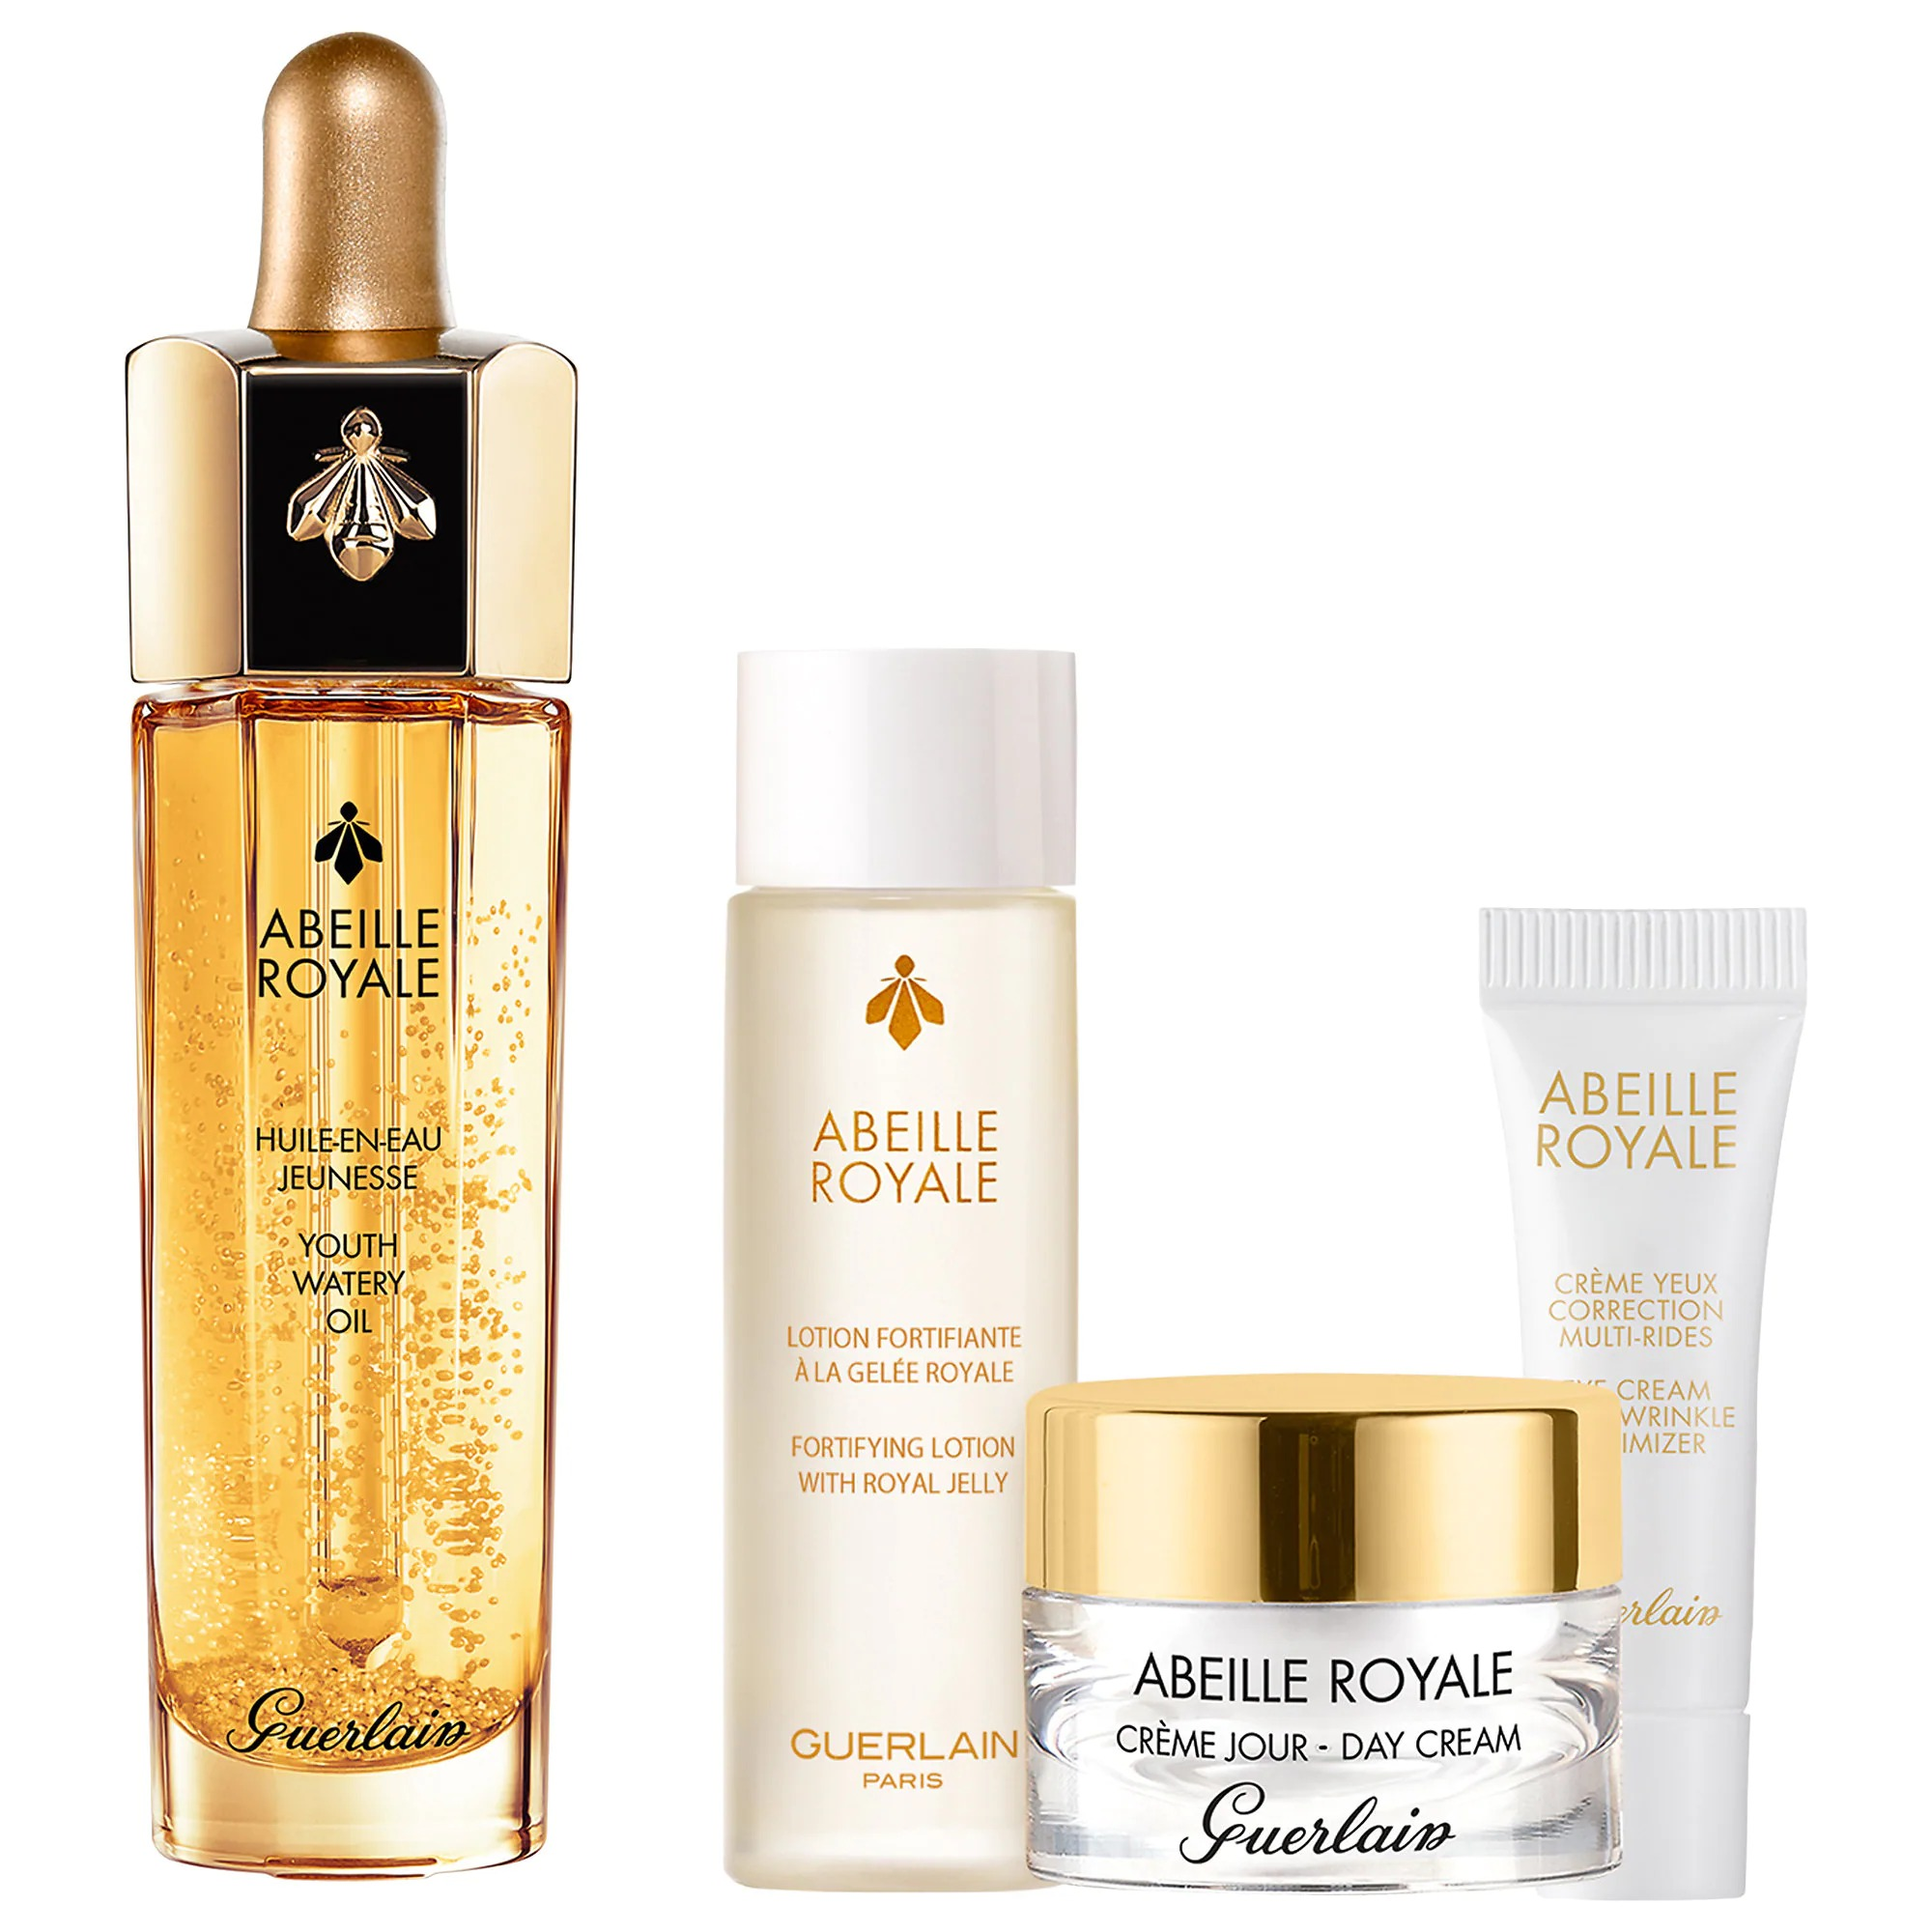 ihocon: 嬌蘭Guerlain Abeille Royale Anti-Aging Youth Watery Oil Discovery Set 抗老保養套裝